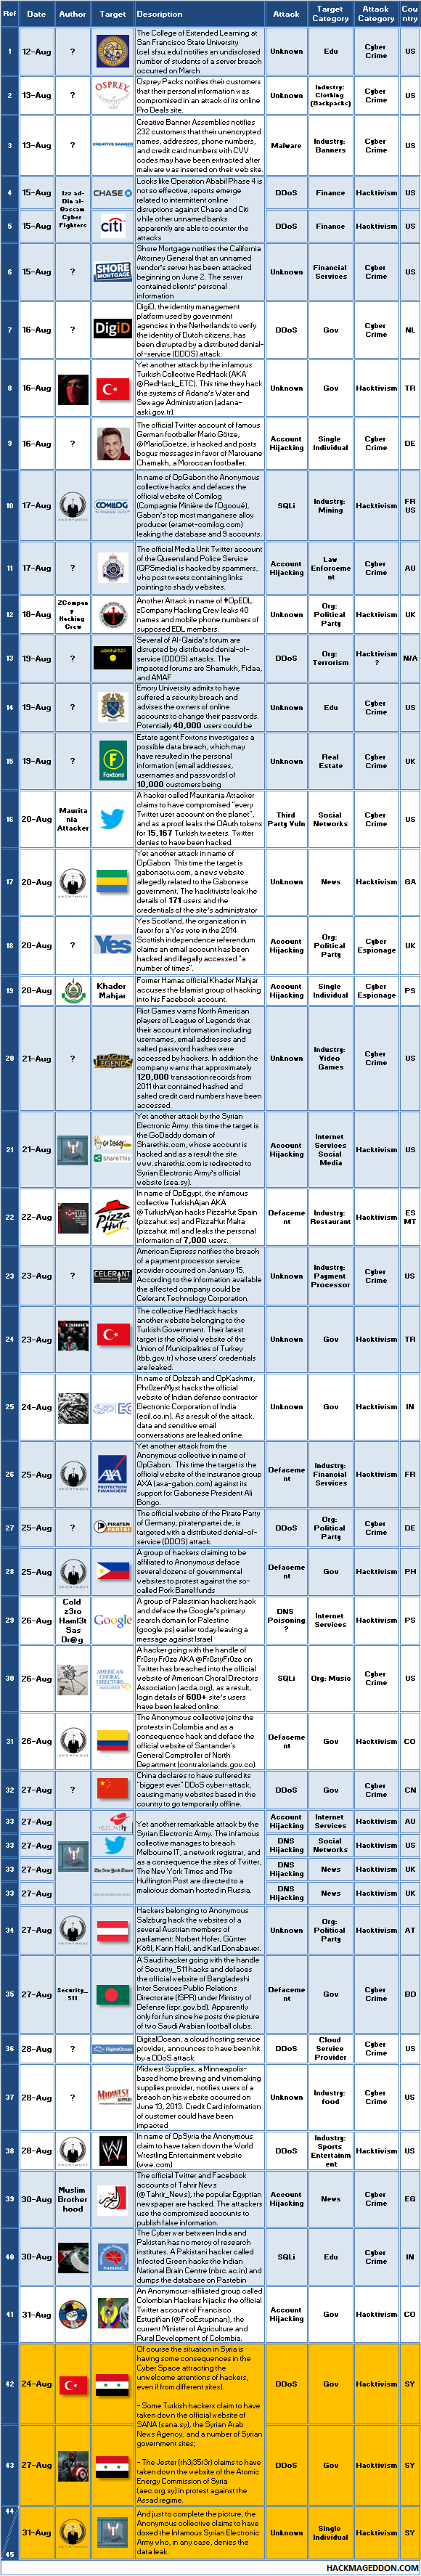 16-31 August 2013 Cyber Attacks Timeline